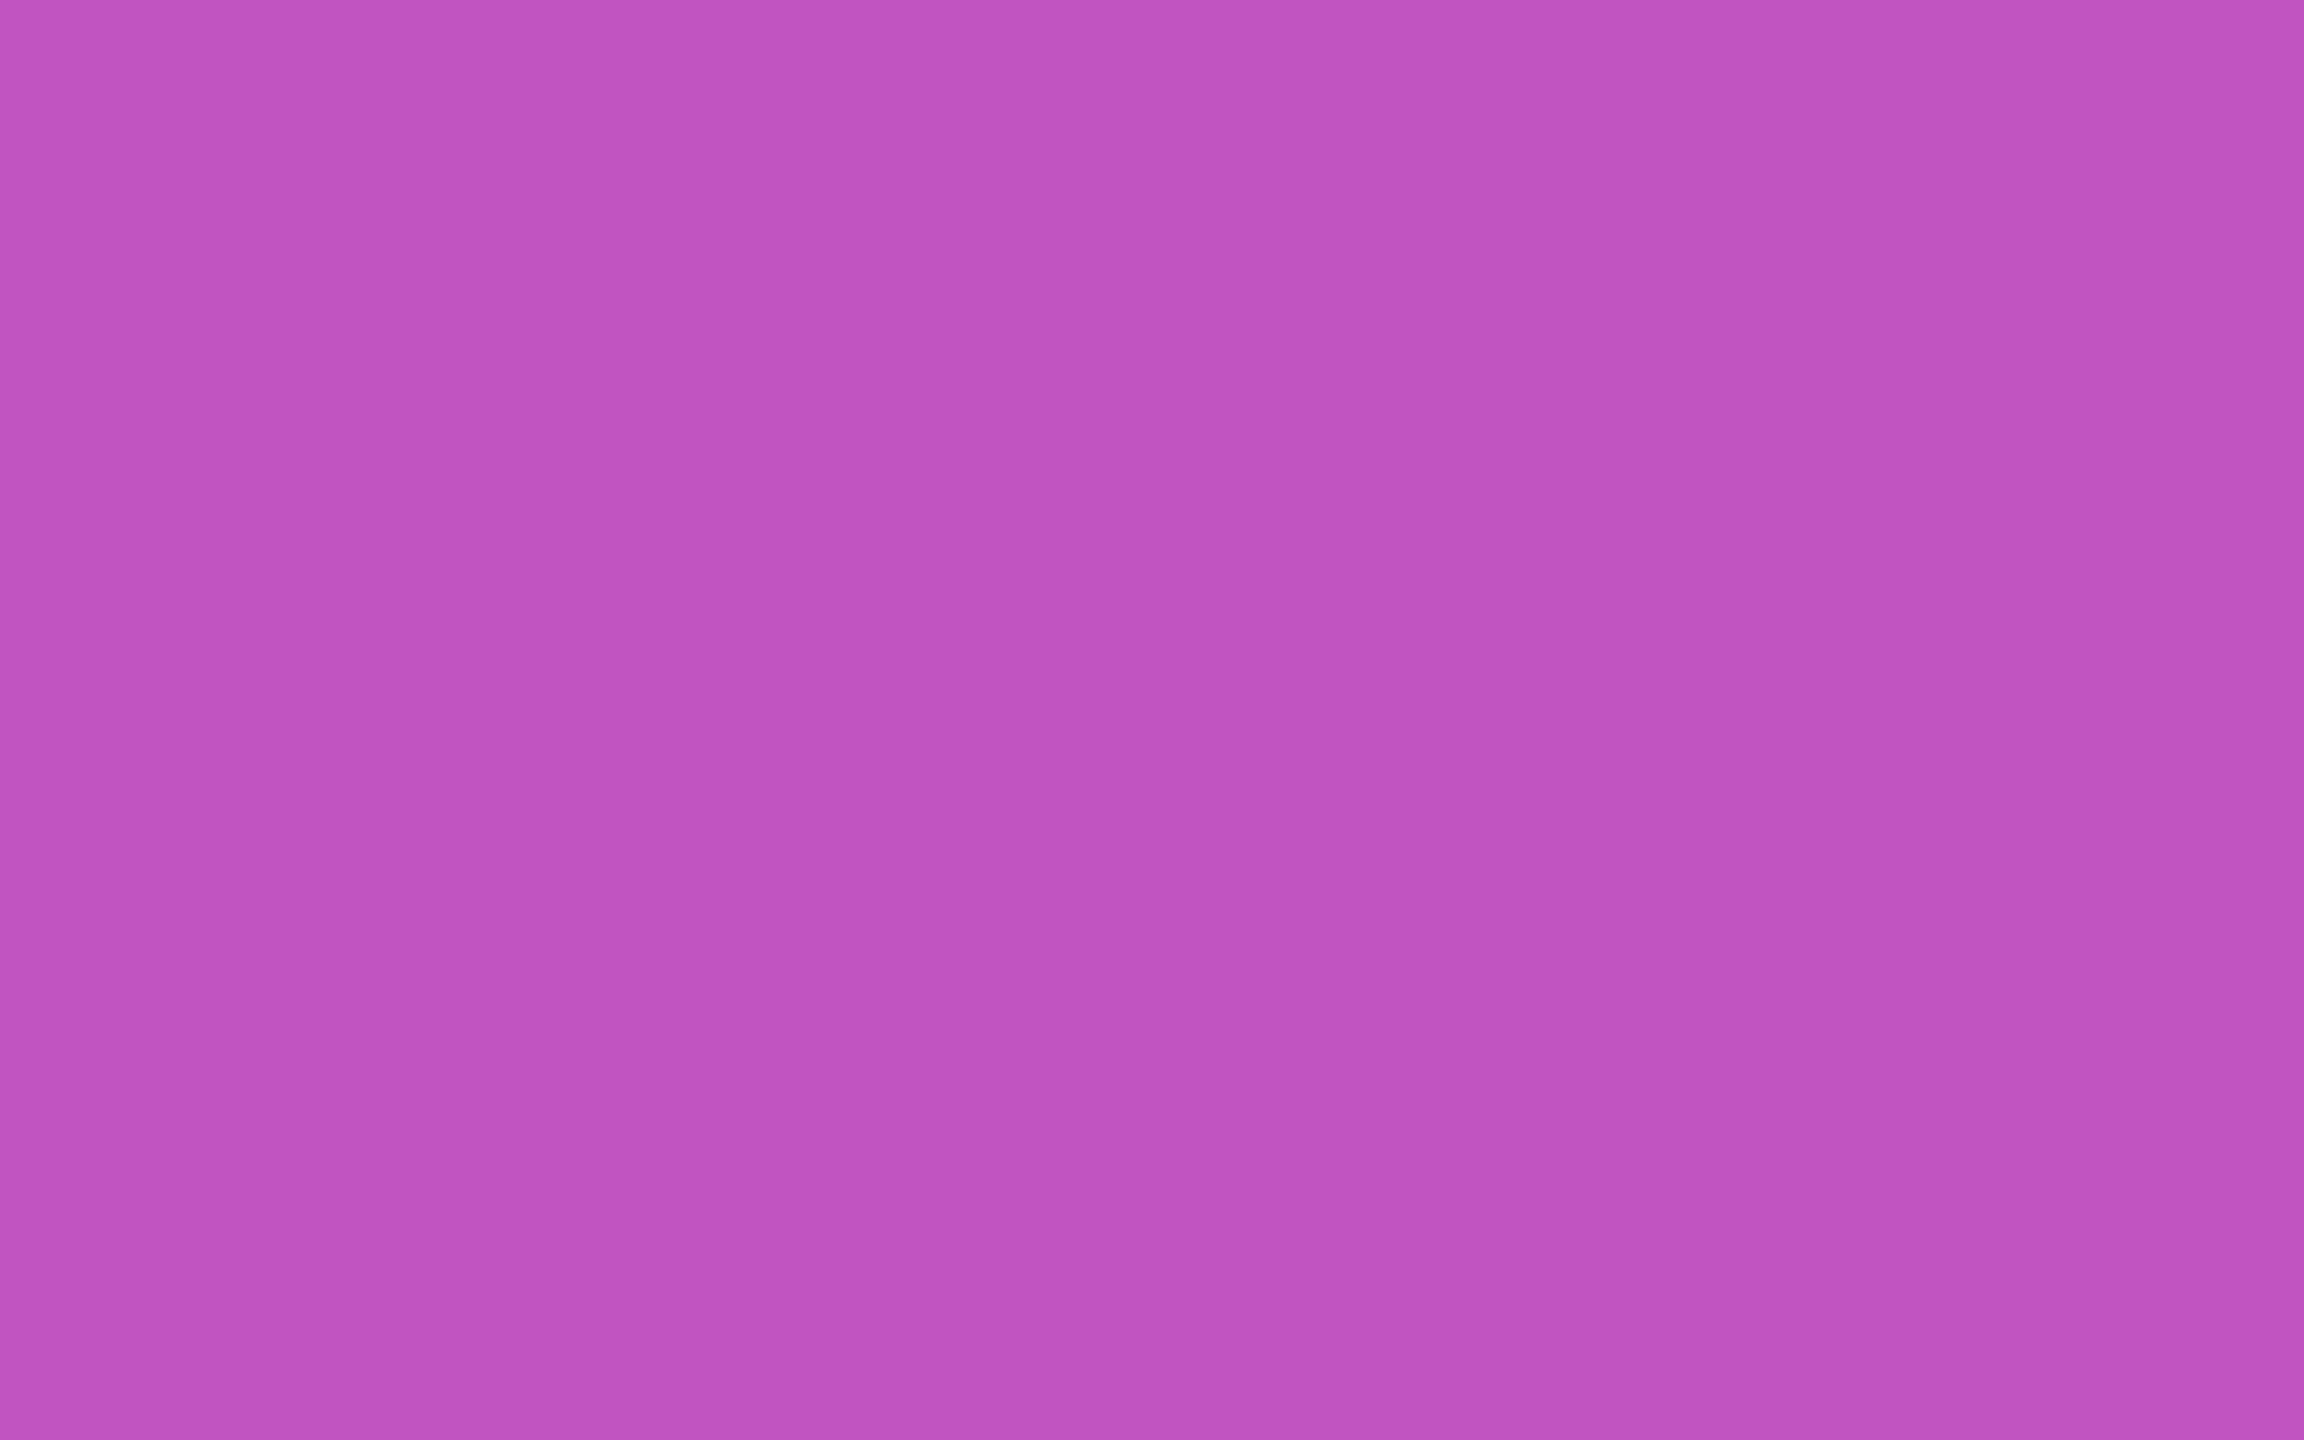 2304x1440 Fuchsia Crayola Solid Color Background